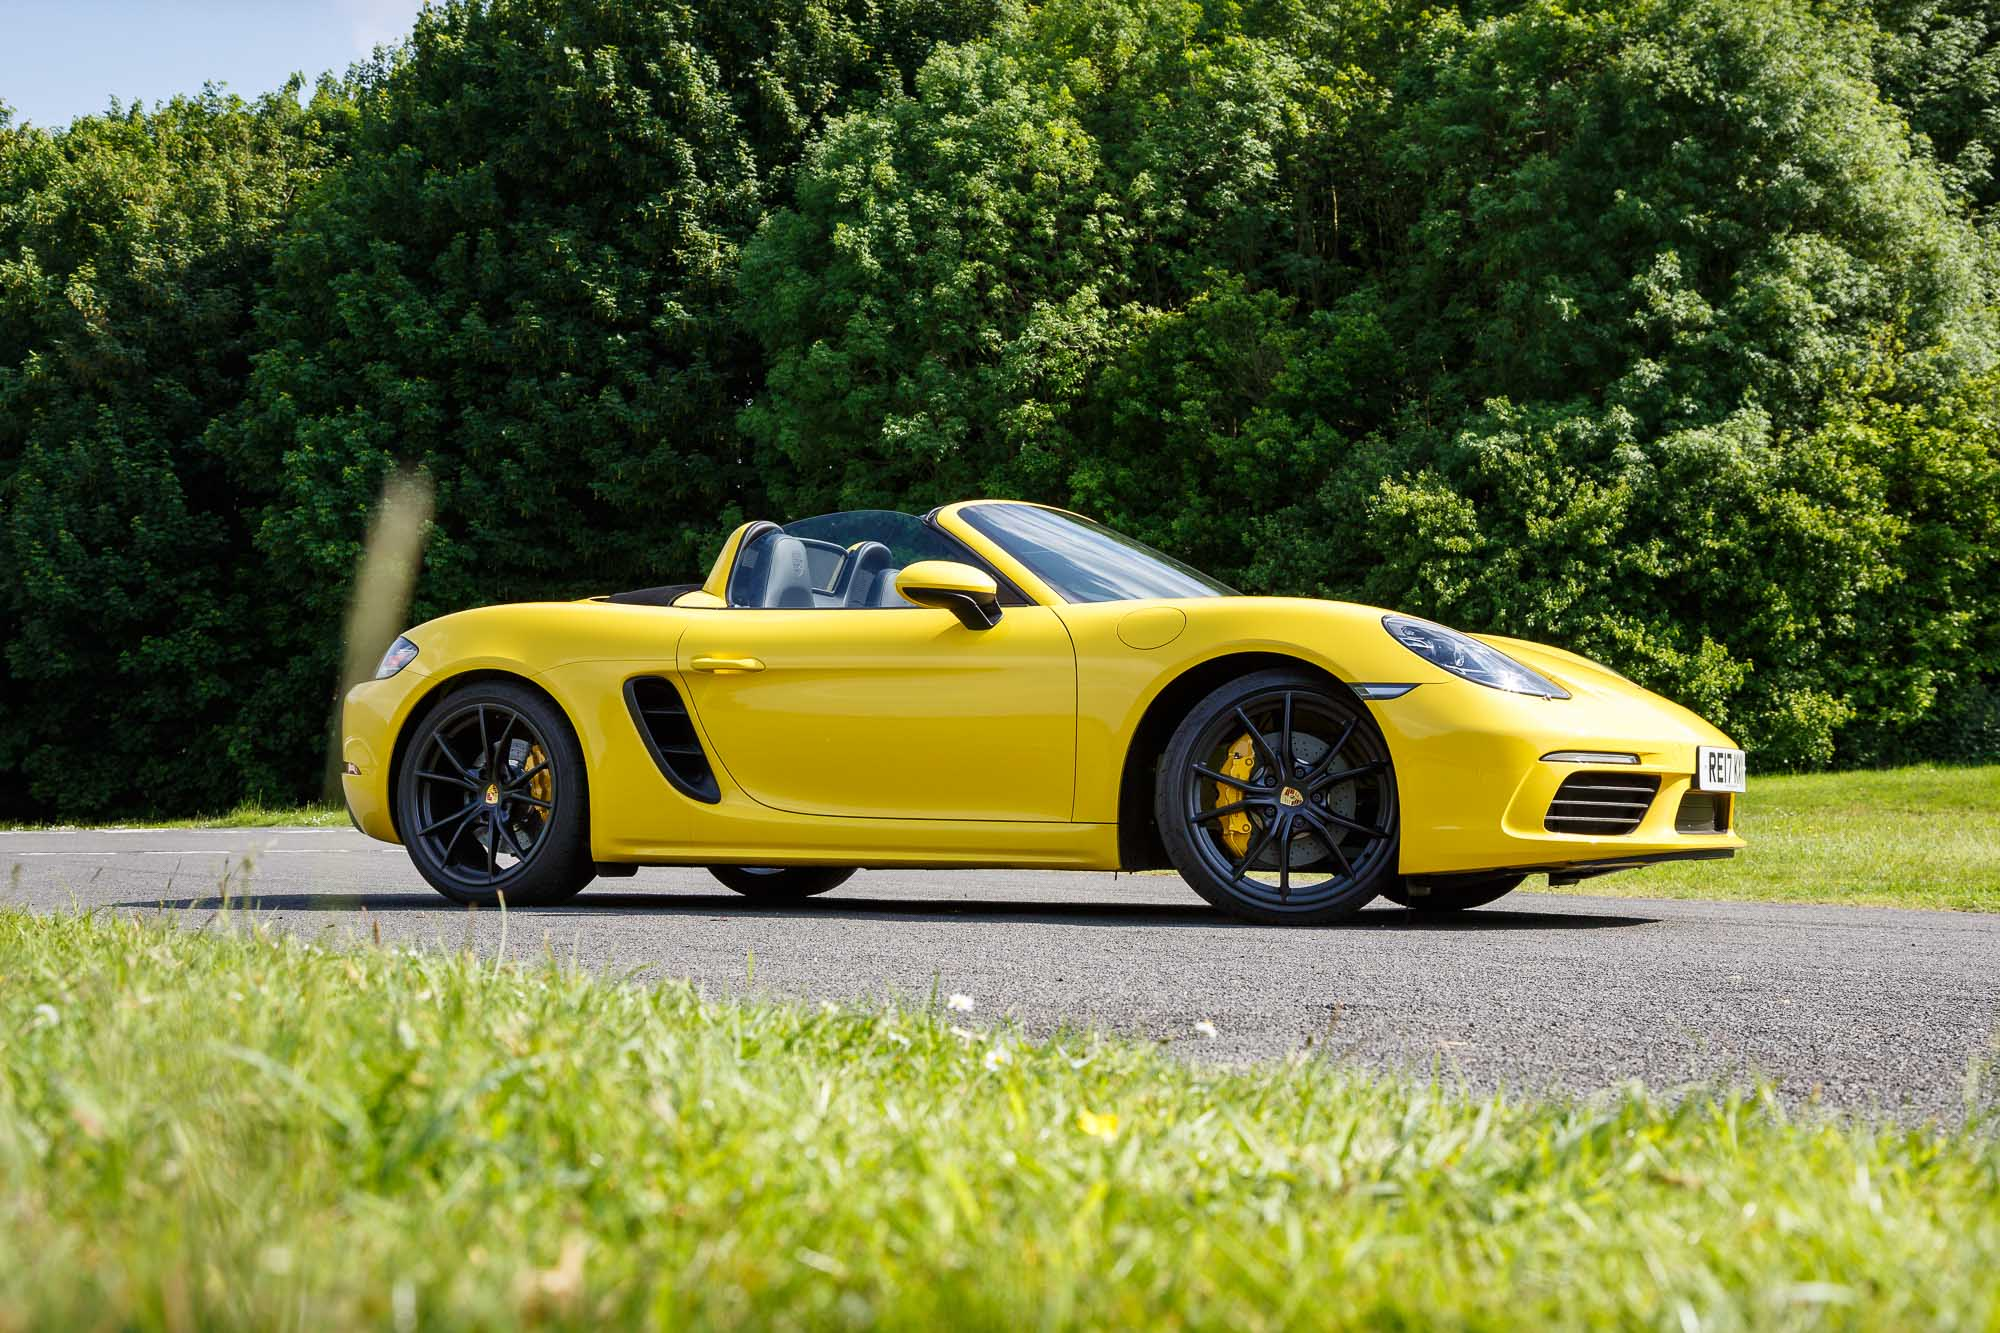 2017 porsche 718 boxster s review faultless fantastic and very fast. Black Bedroom Furniture Sets. Home Design Ideas